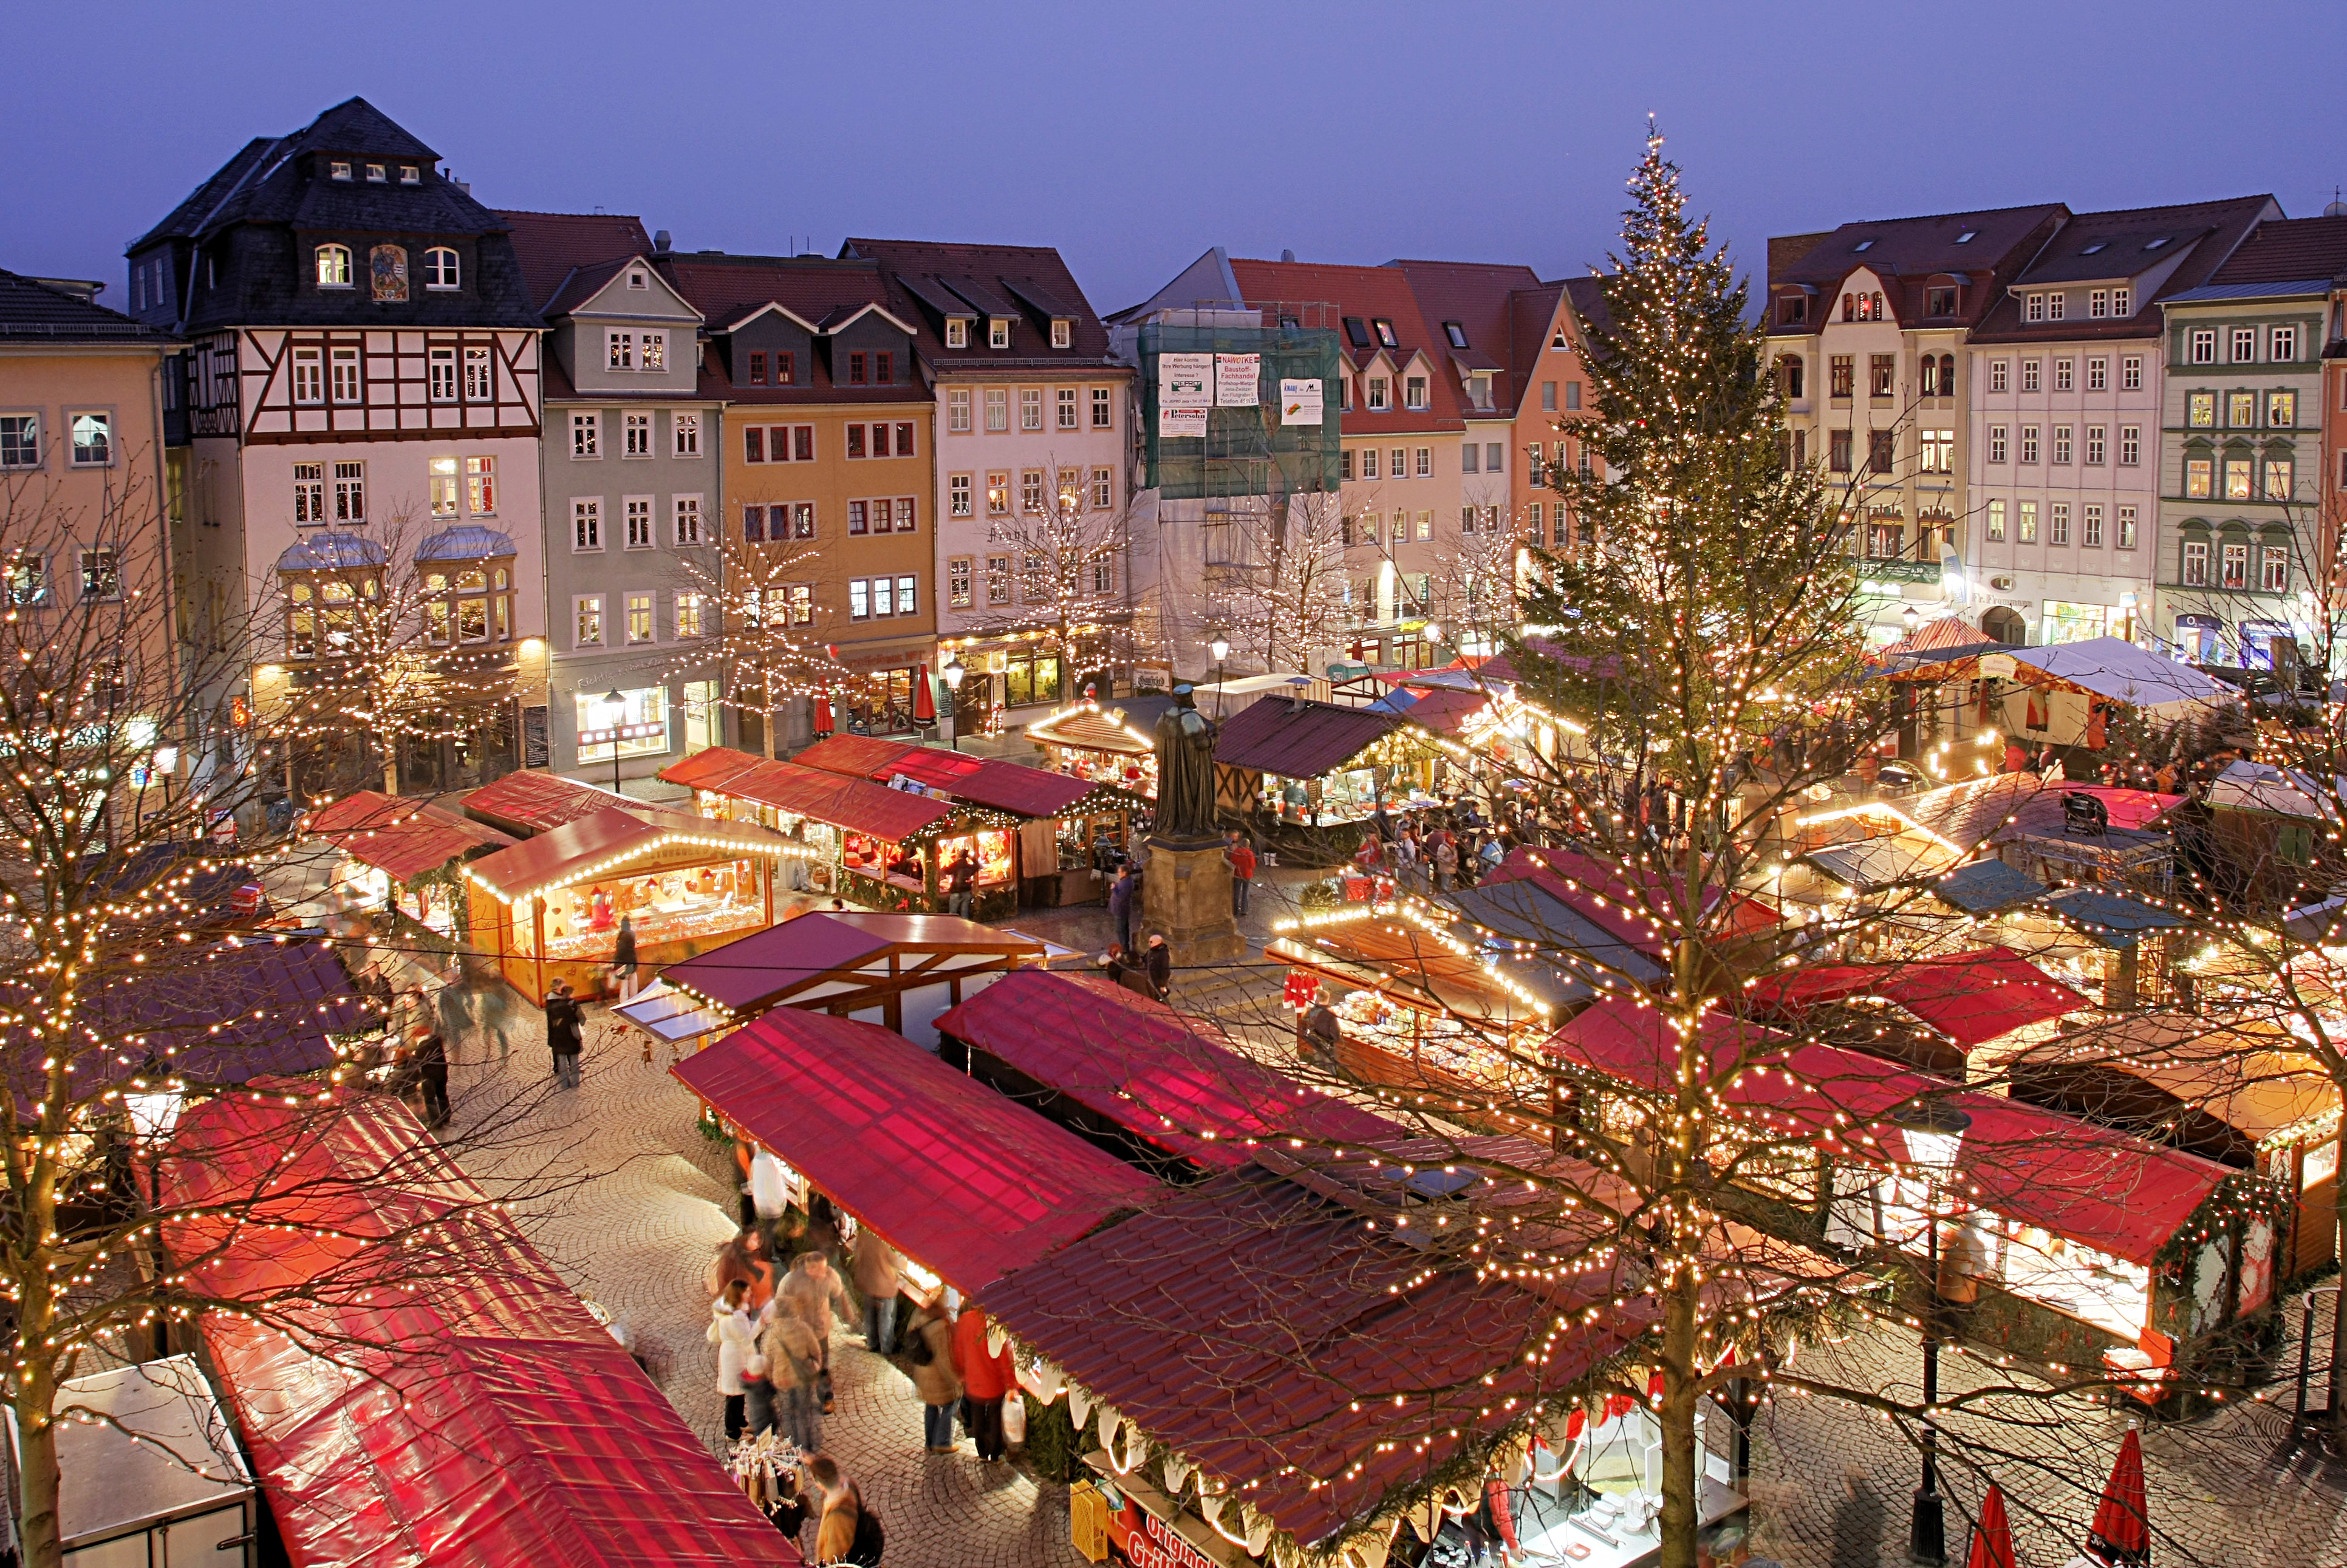 Christmas Market In Germany.Germany The Christmas Markets